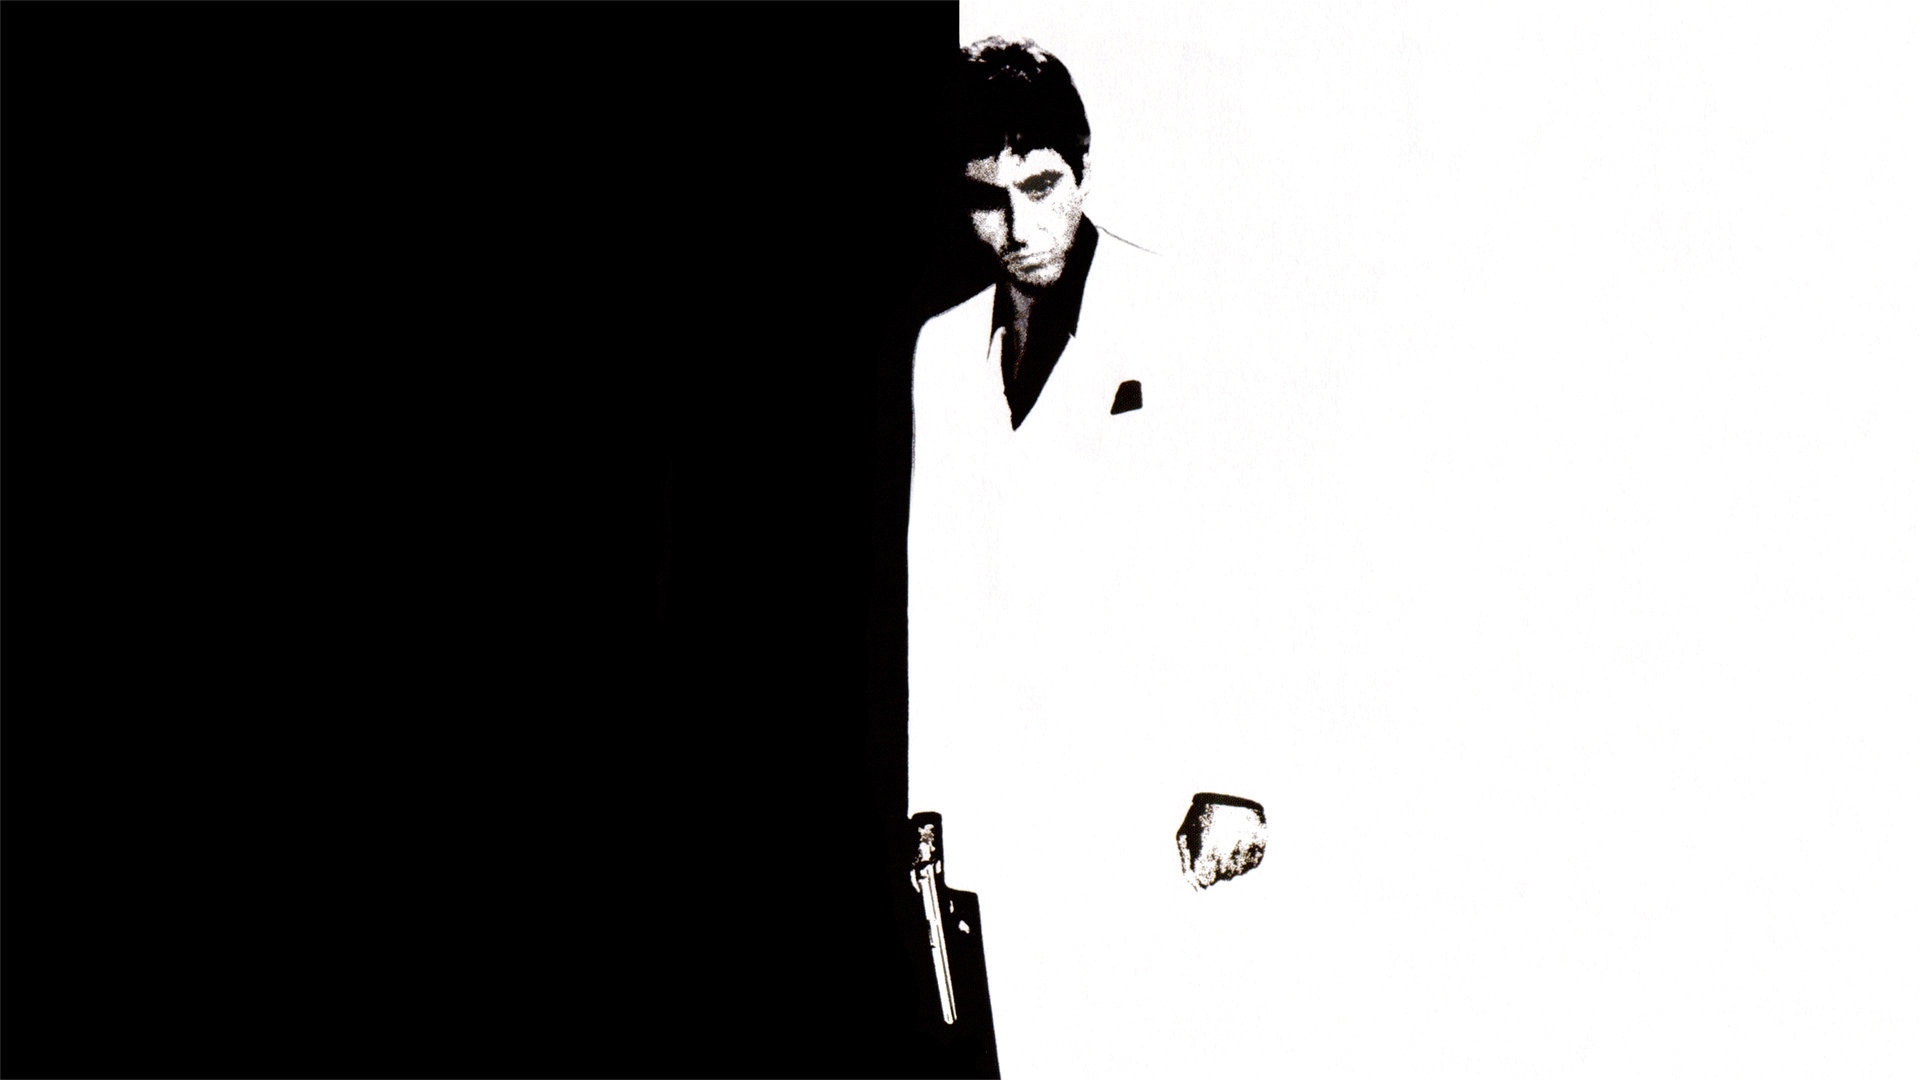 Scarface Wallpaper   Scarface Wallpaper 1920x1080 2940 1920x1080